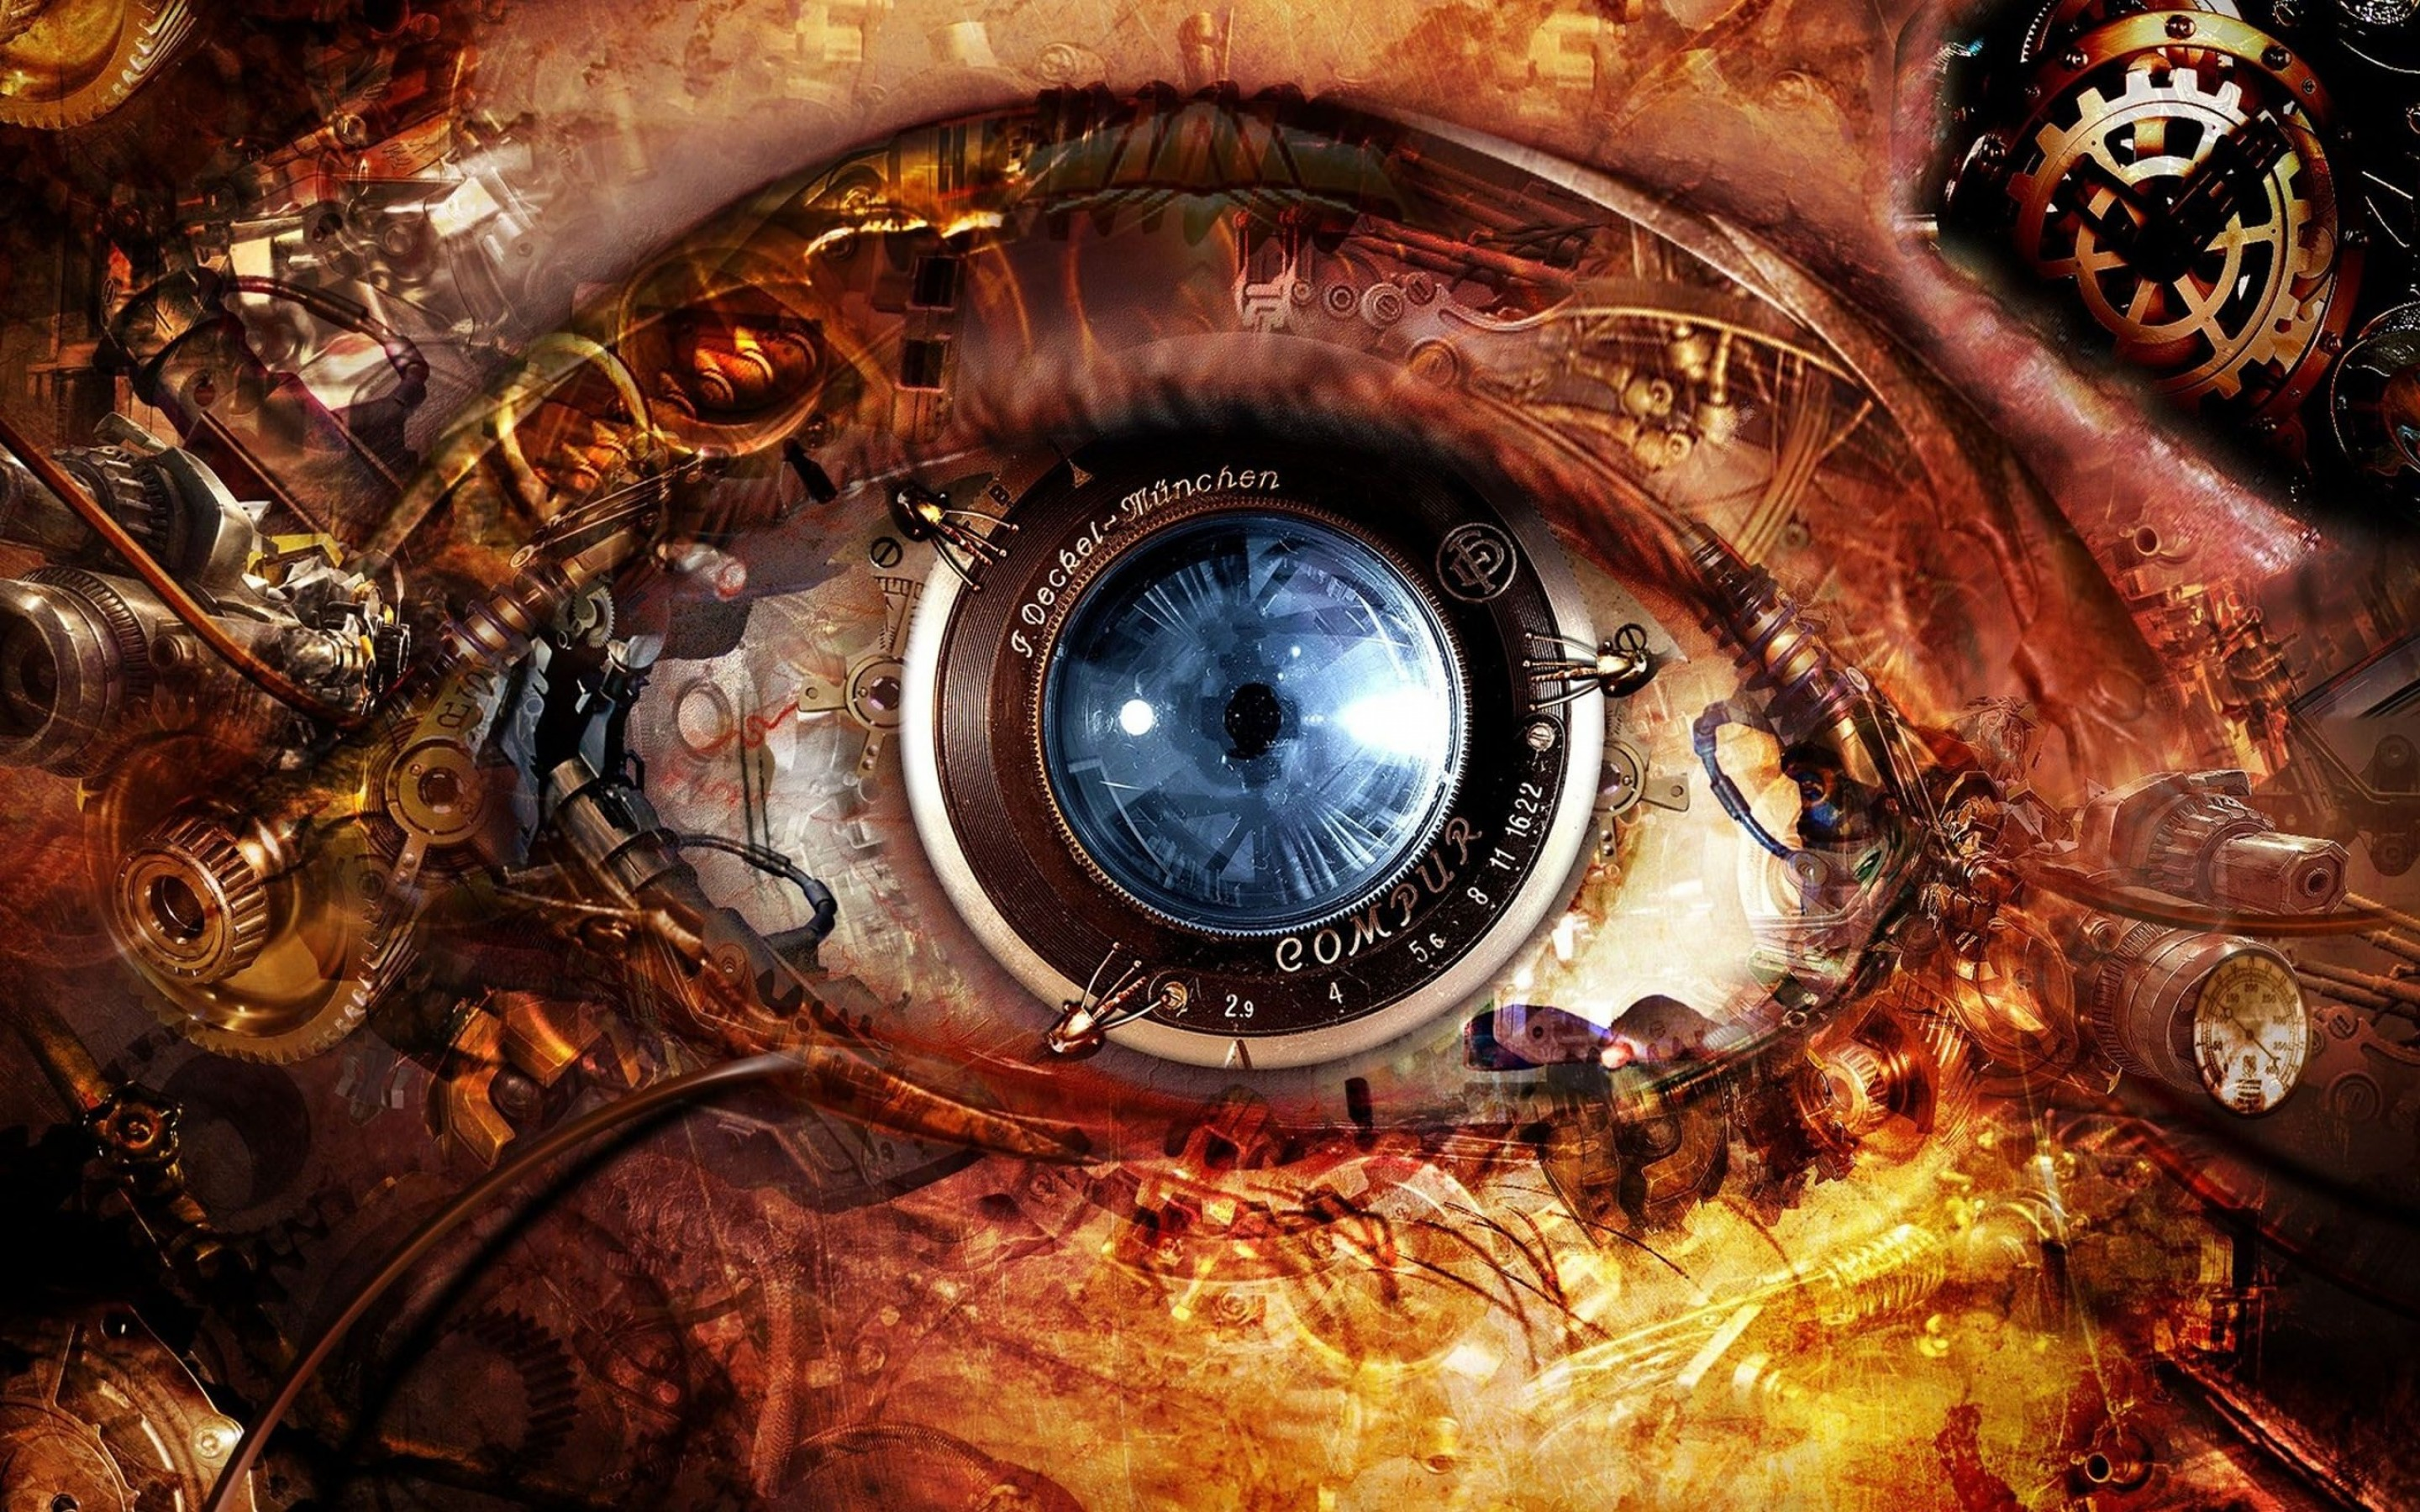 Steampunk Abstract Eyes HD Wallpaper 2880x1800